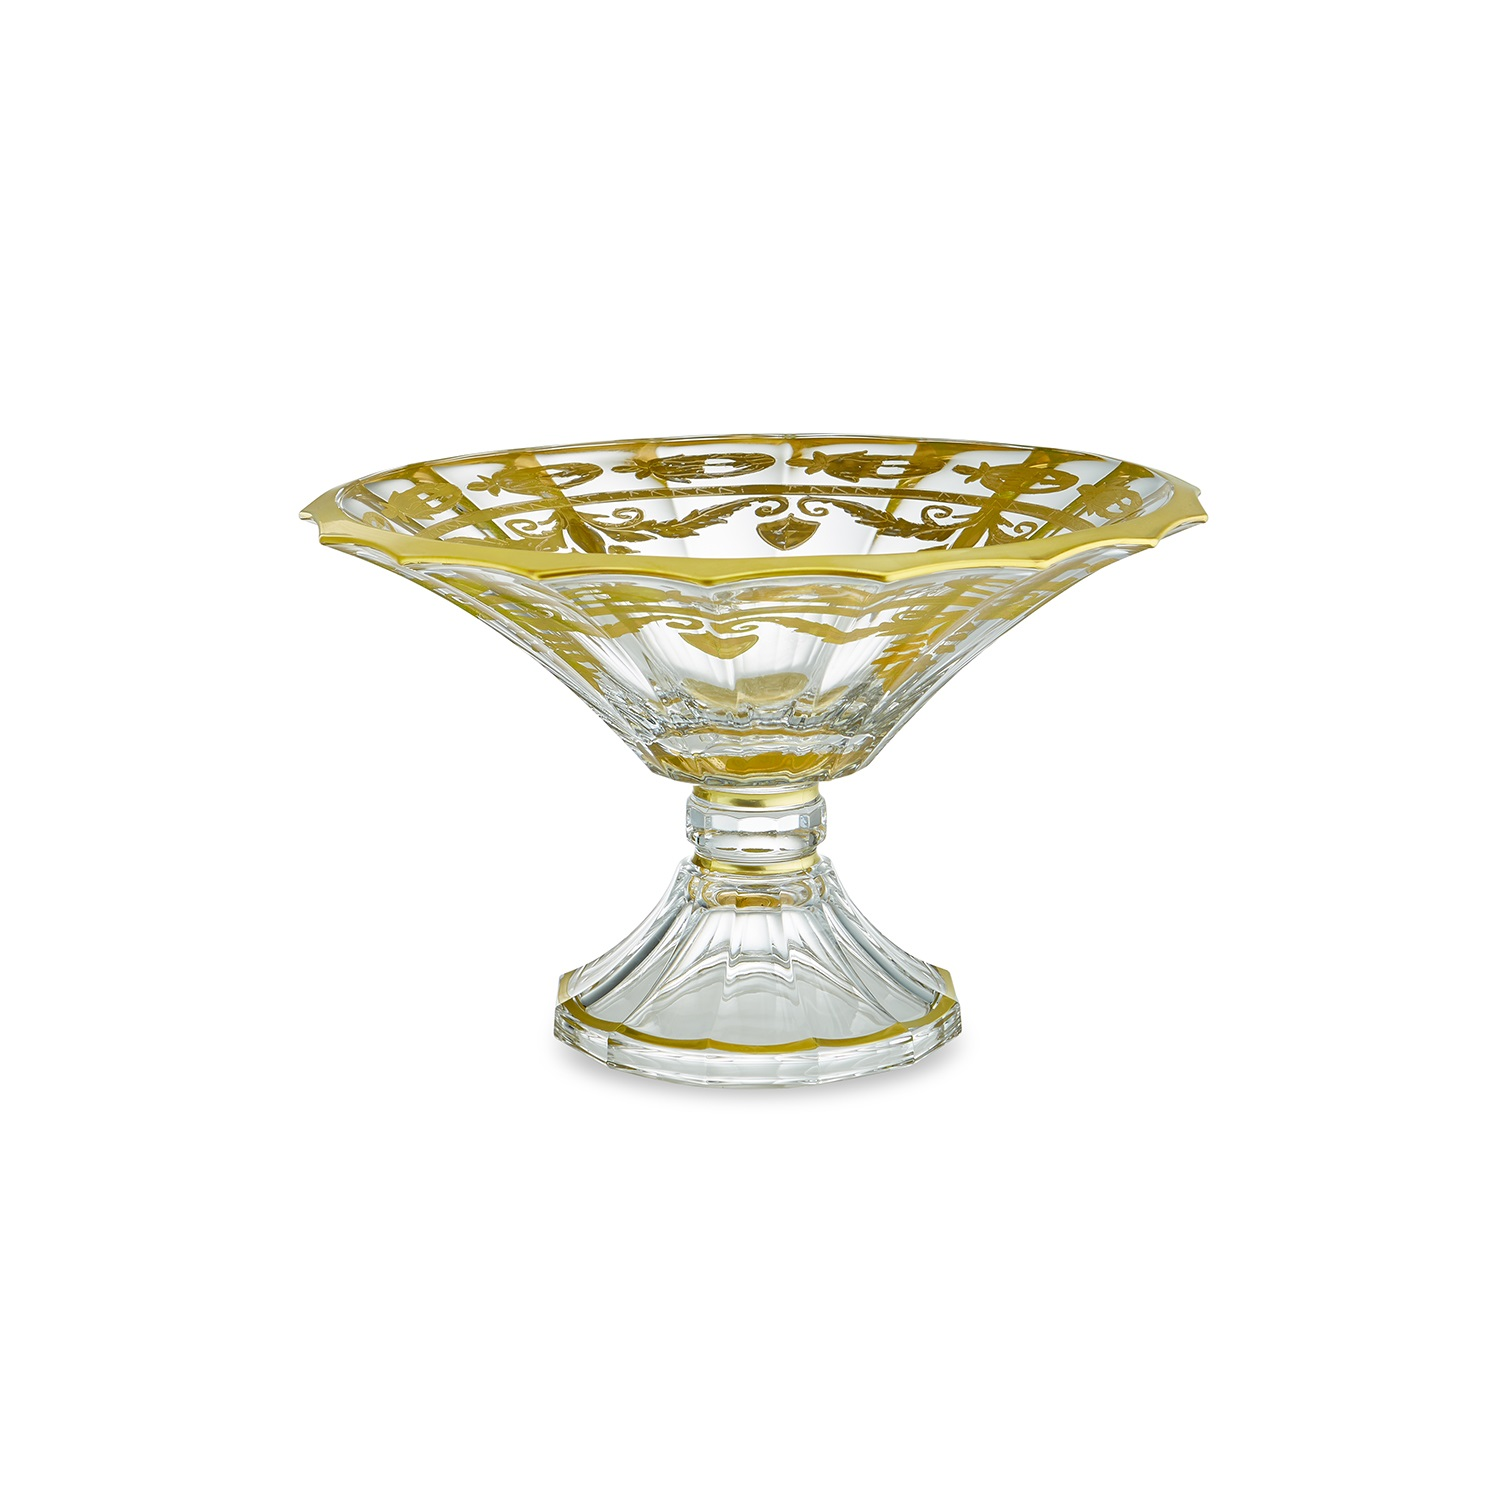 arte-italica-vetro-gold-scalloped-footed-bowl-13.25x7-in-vg4817.jpg